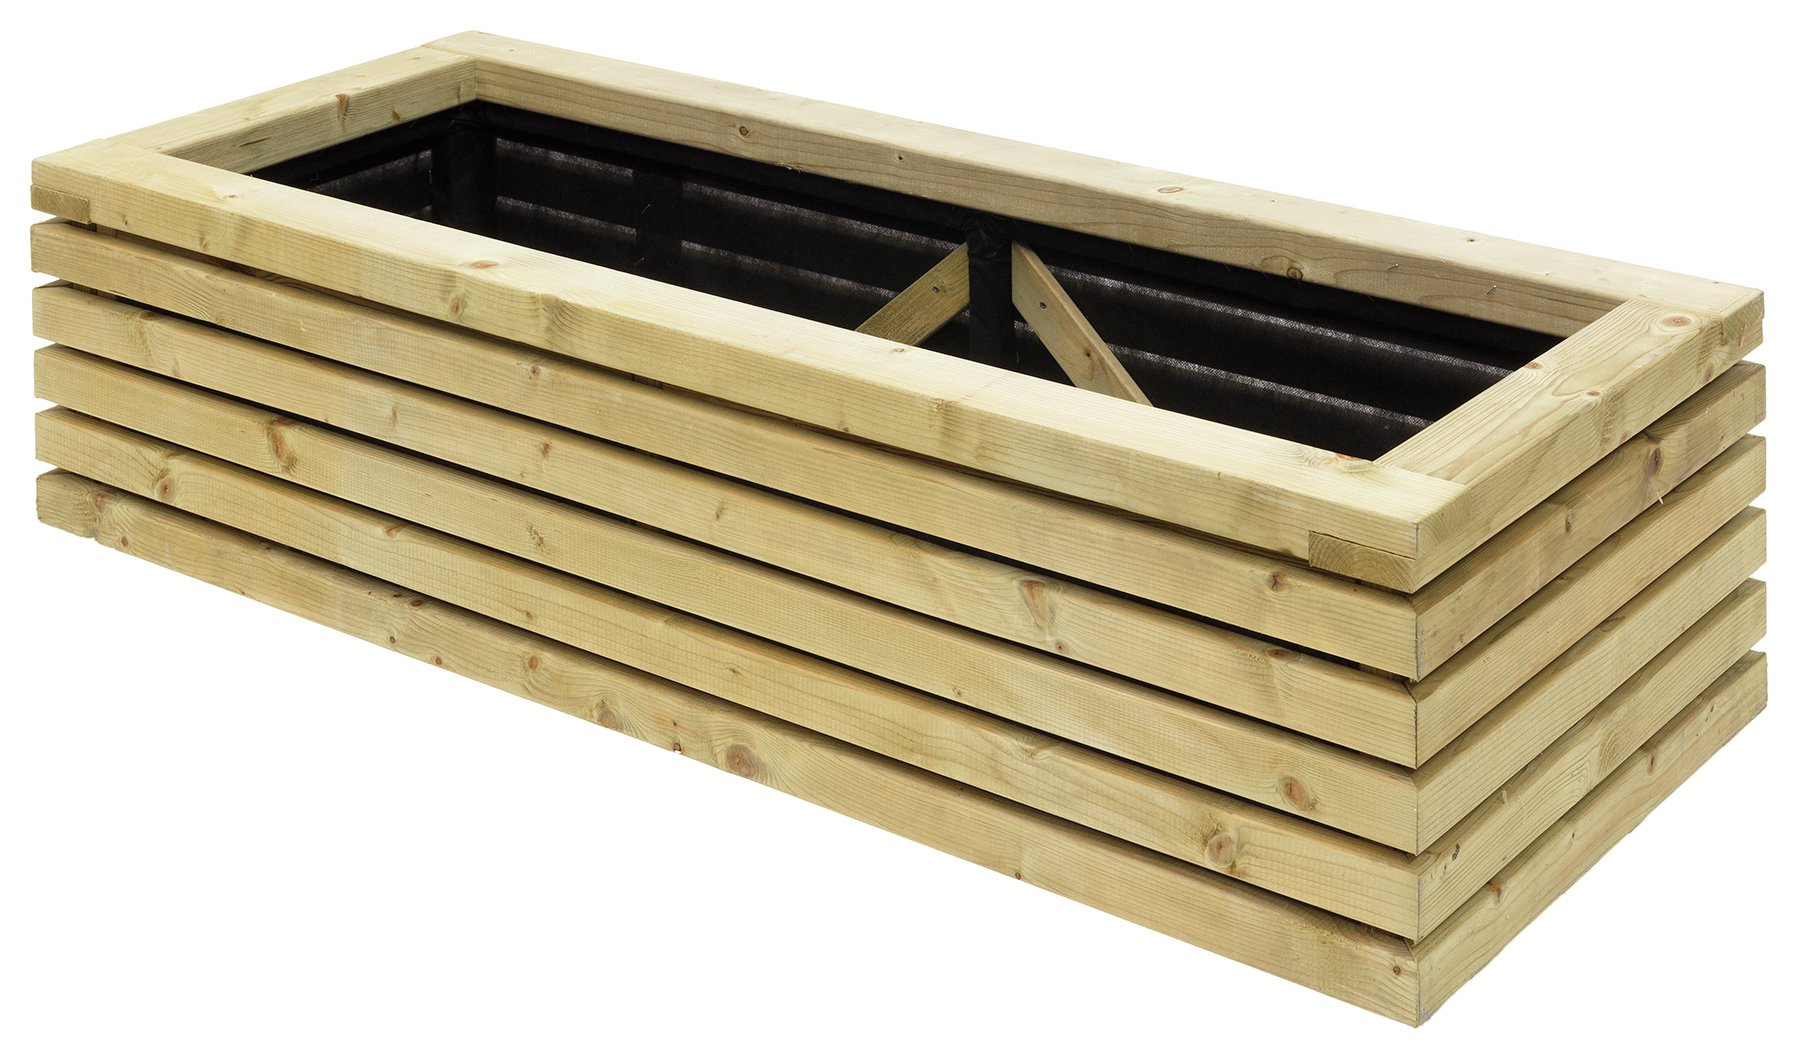 Grange Fencing Contemporary Rectangular Garden Planter. lowest price